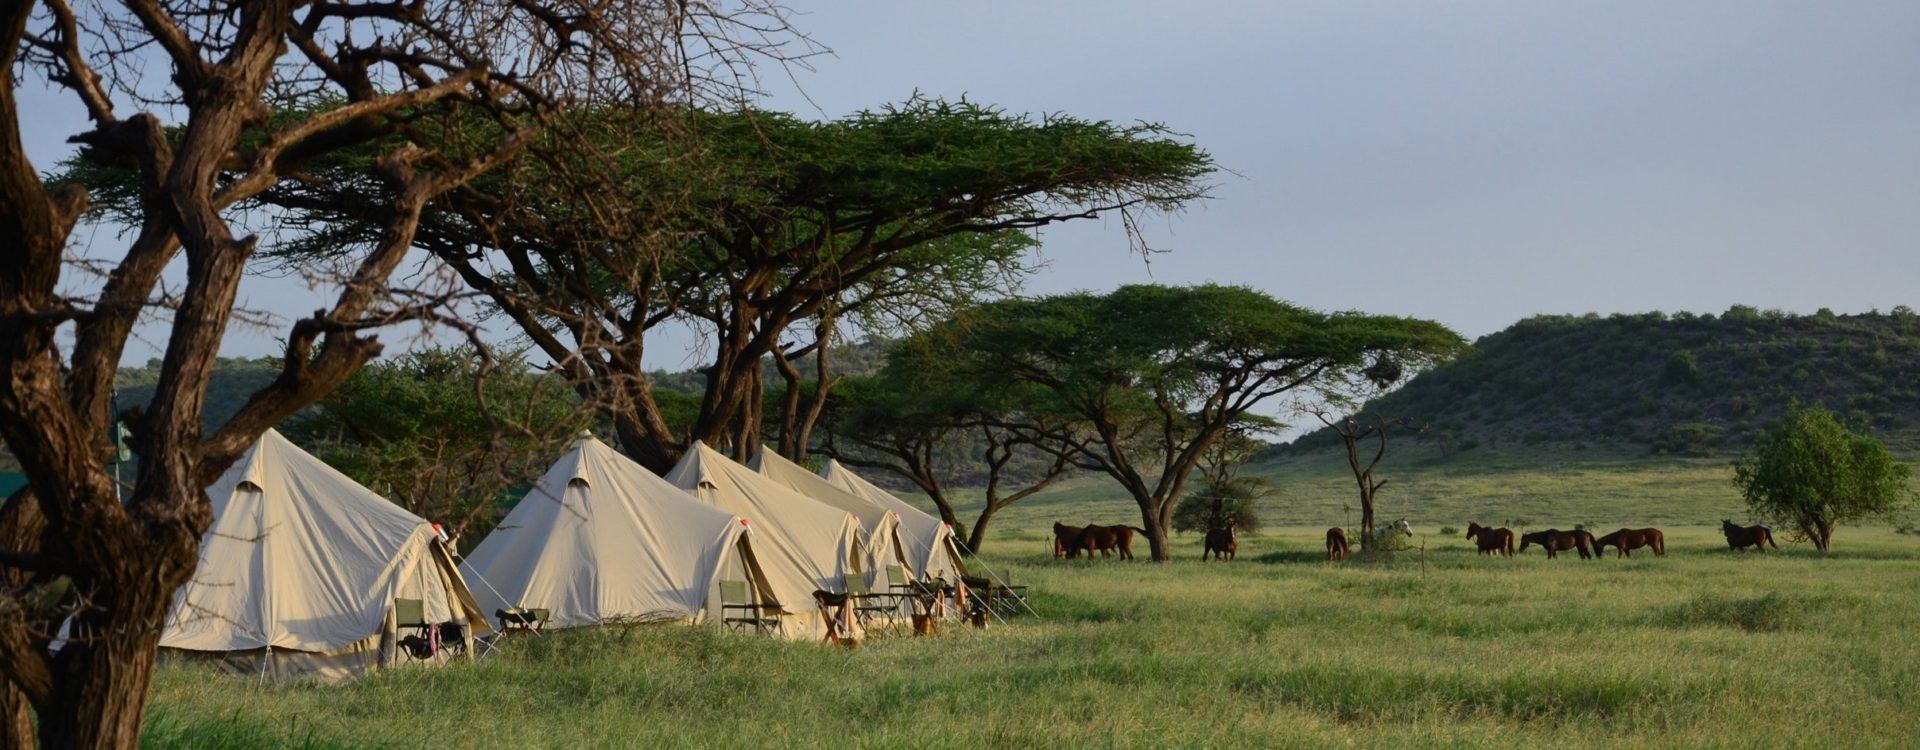 Riding Safari across the Serengeti - Tanzania